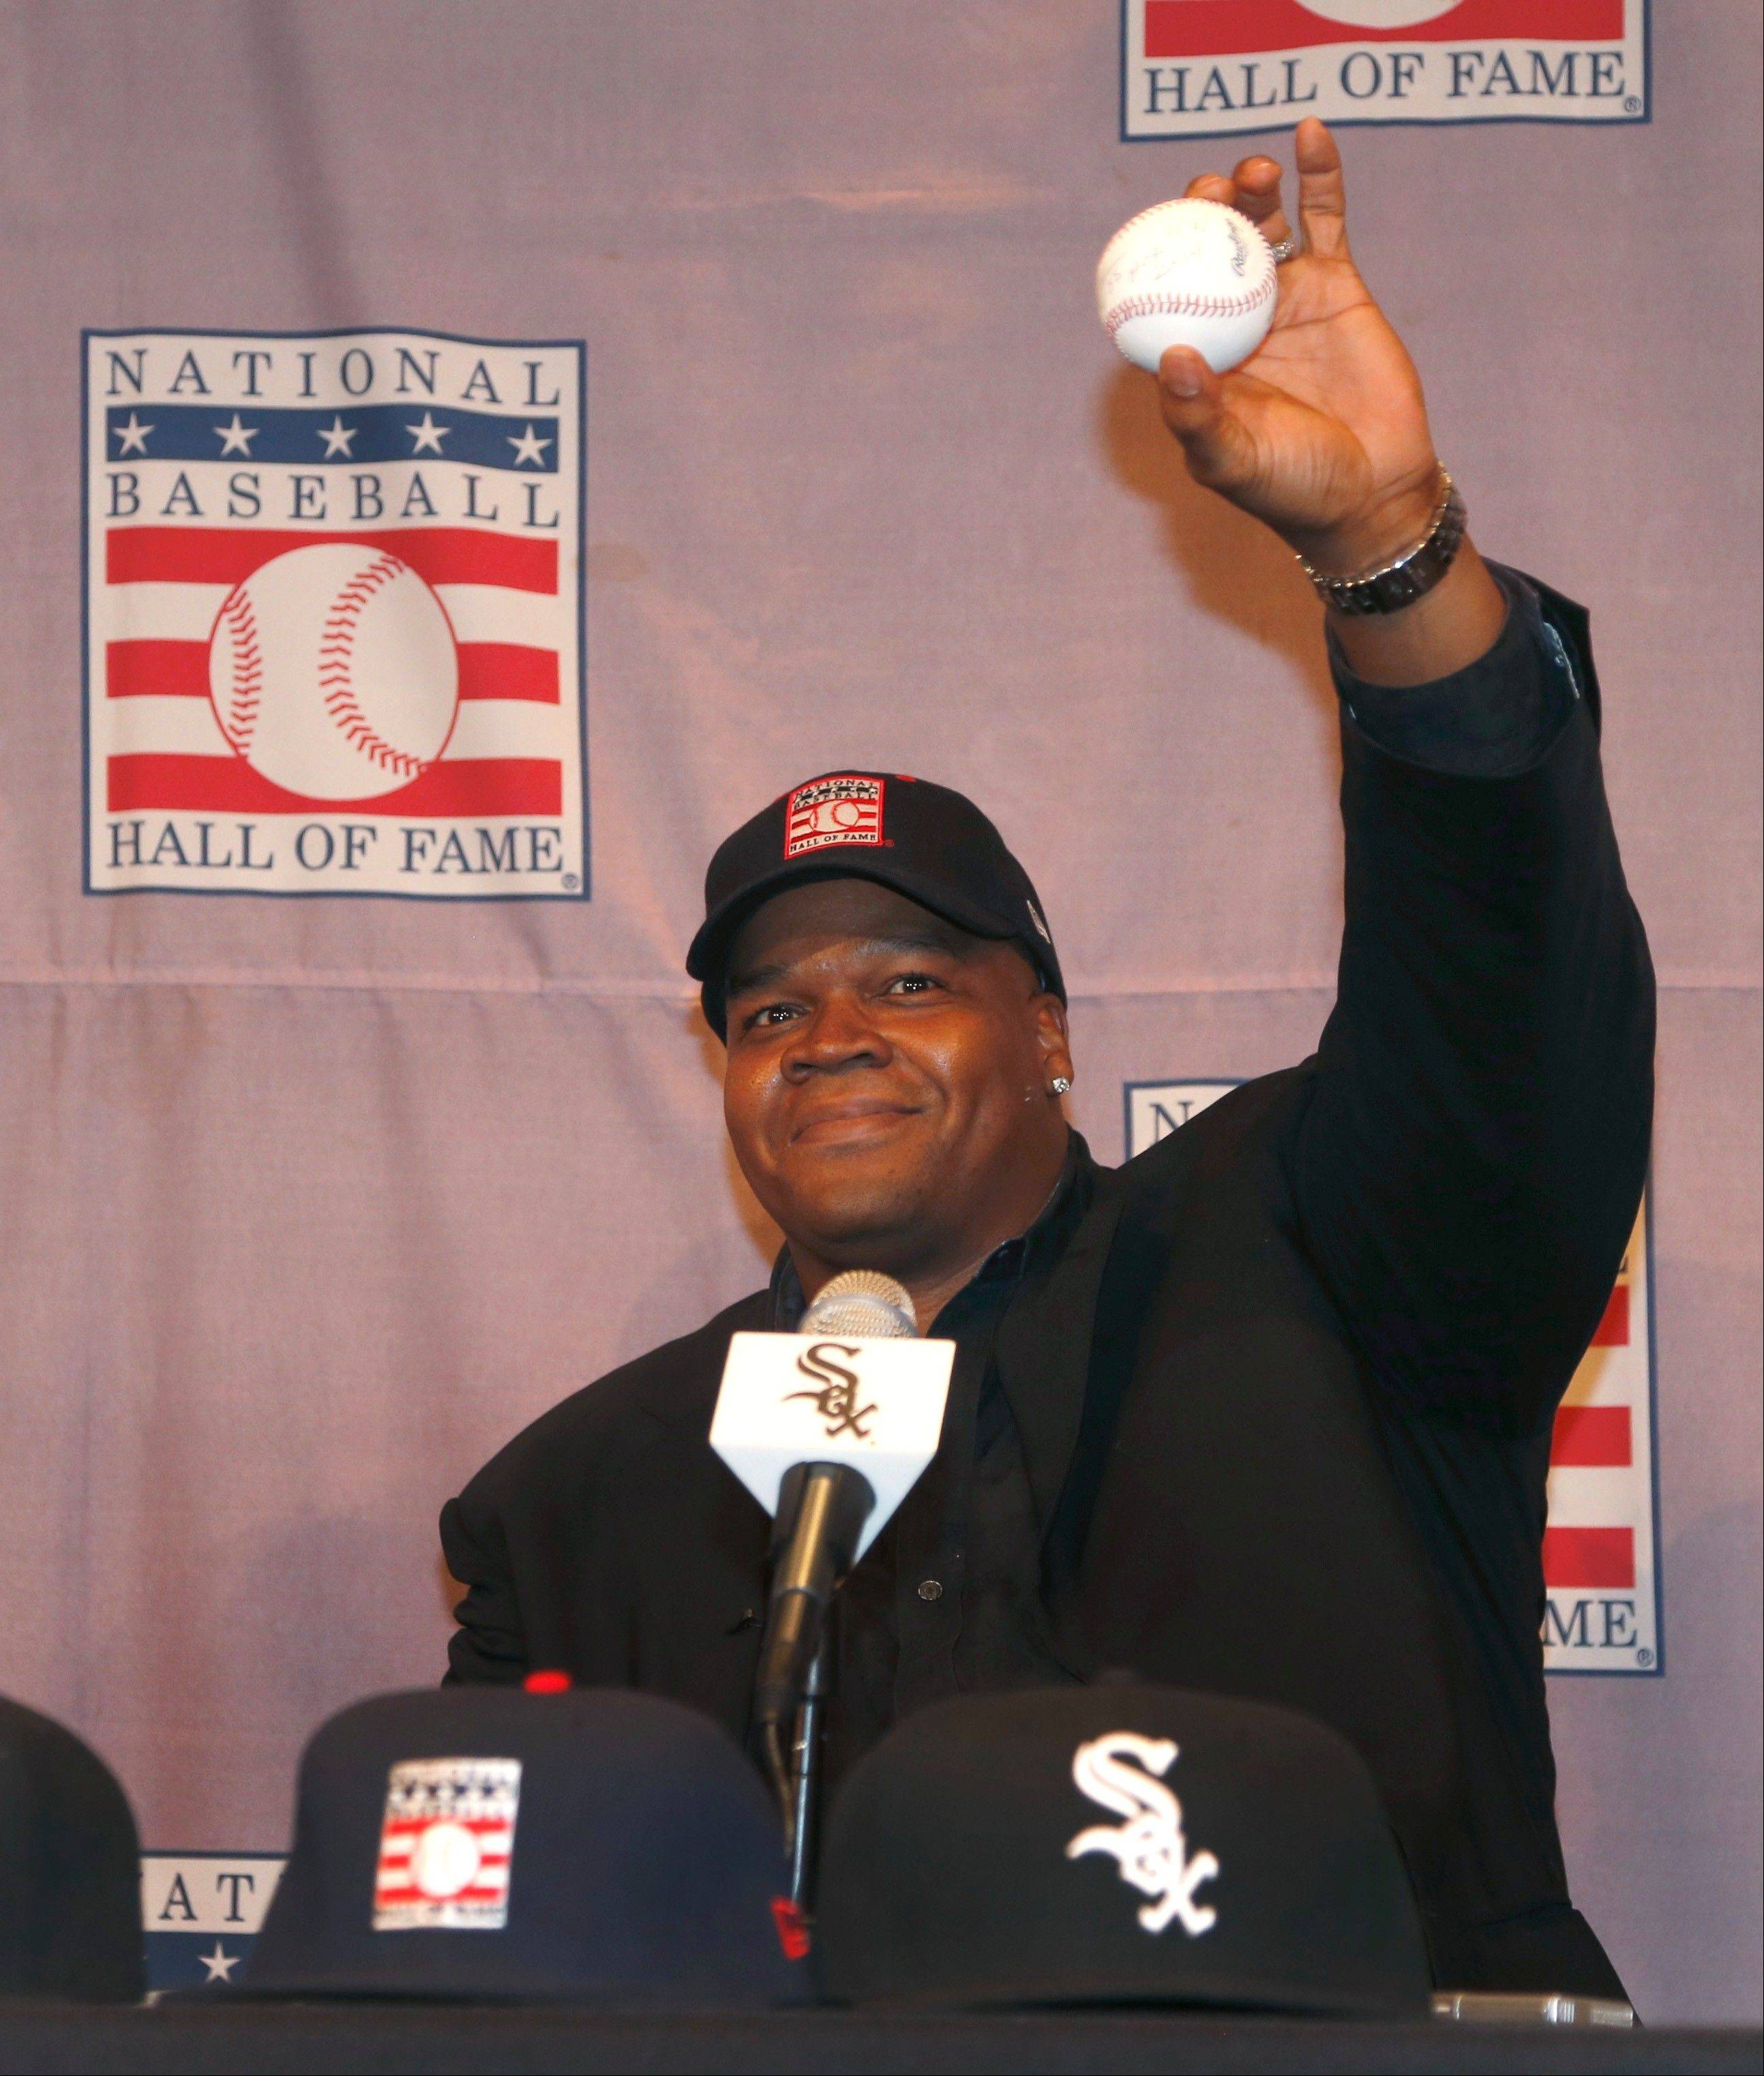 "Frank Thomas holds up a baseball he signed ""Frank Thomas HOF"" during a news conference Wednesday to discuss the announcement of his selection as a first-ballot Hall of Famer."